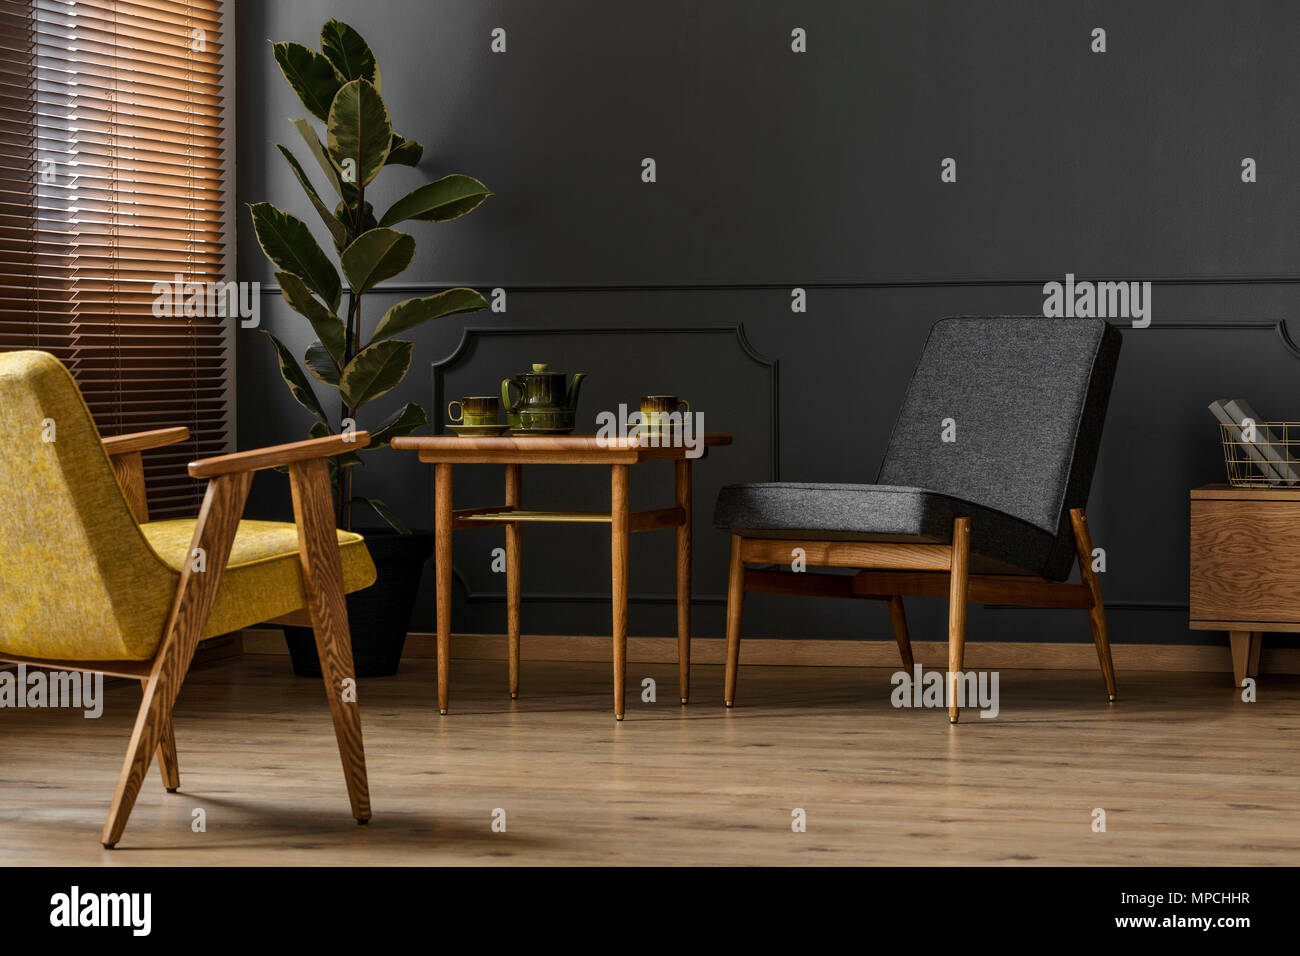 Simple, dark retro living room interior concept with two chairs ...